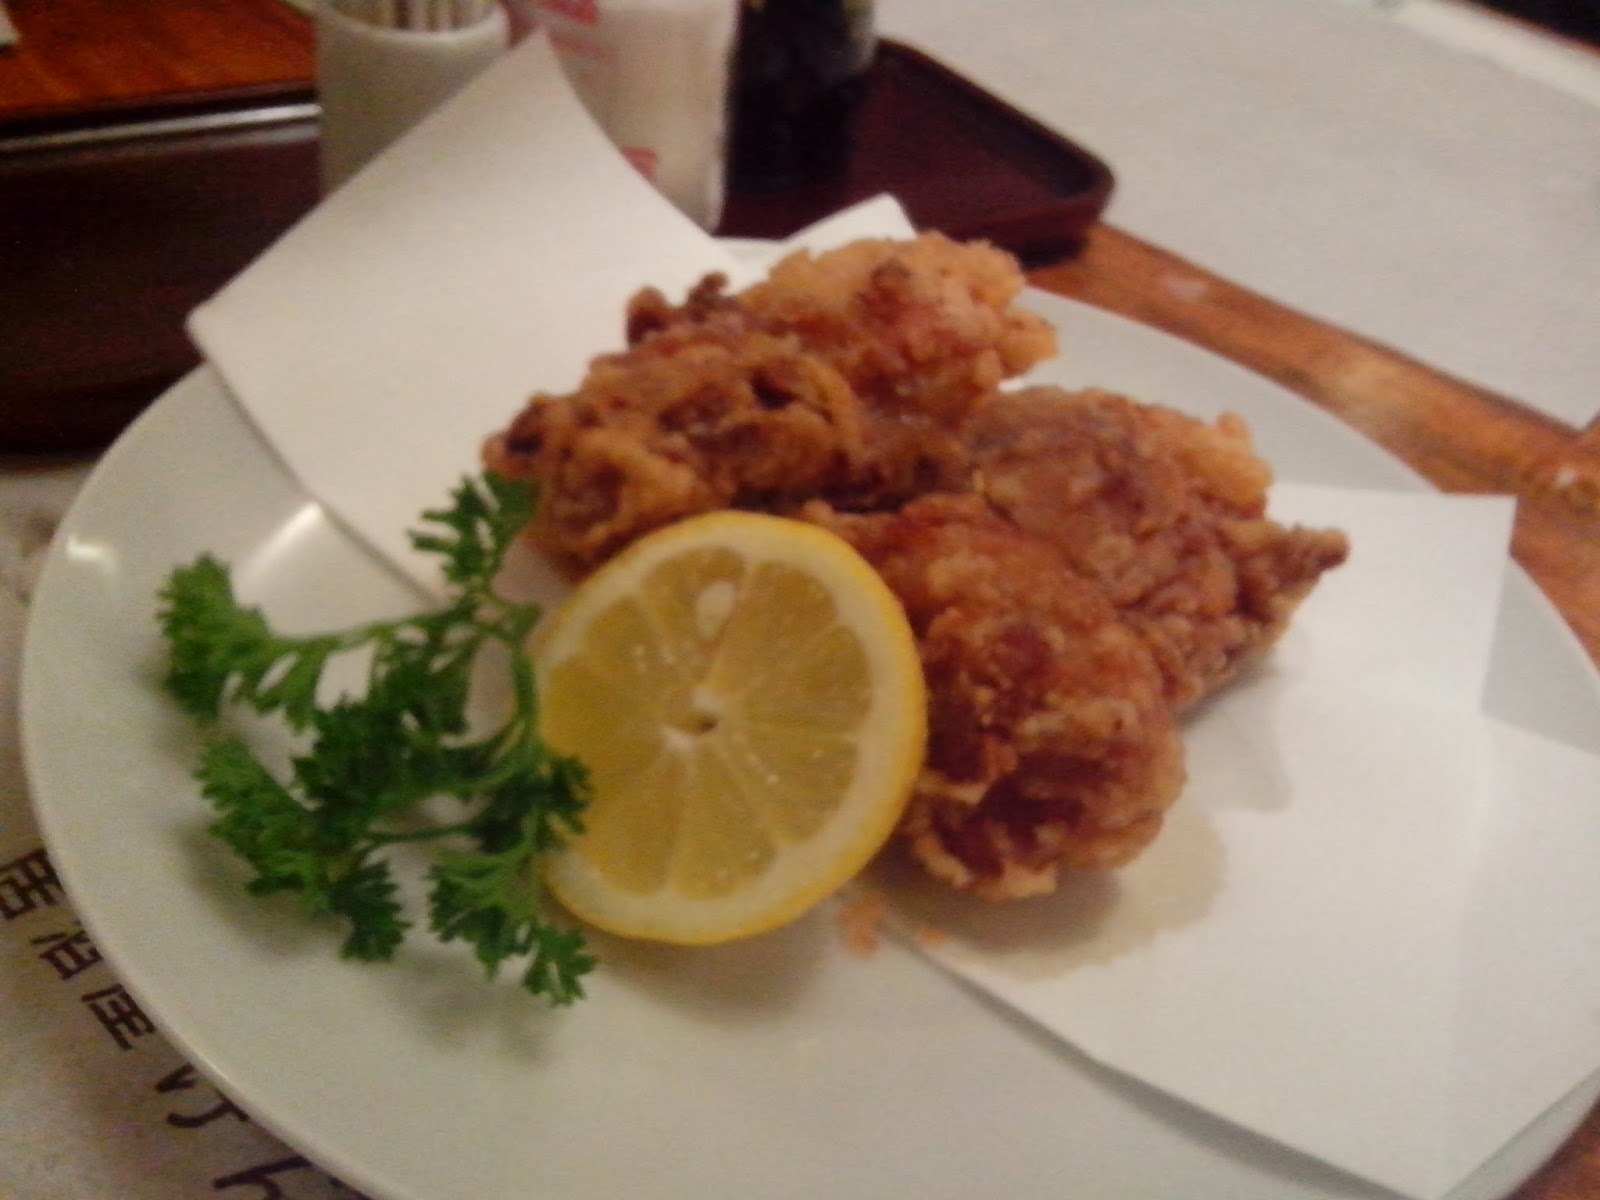 The Japanese-style deep fried chicken Tori Karaage looked great even ...